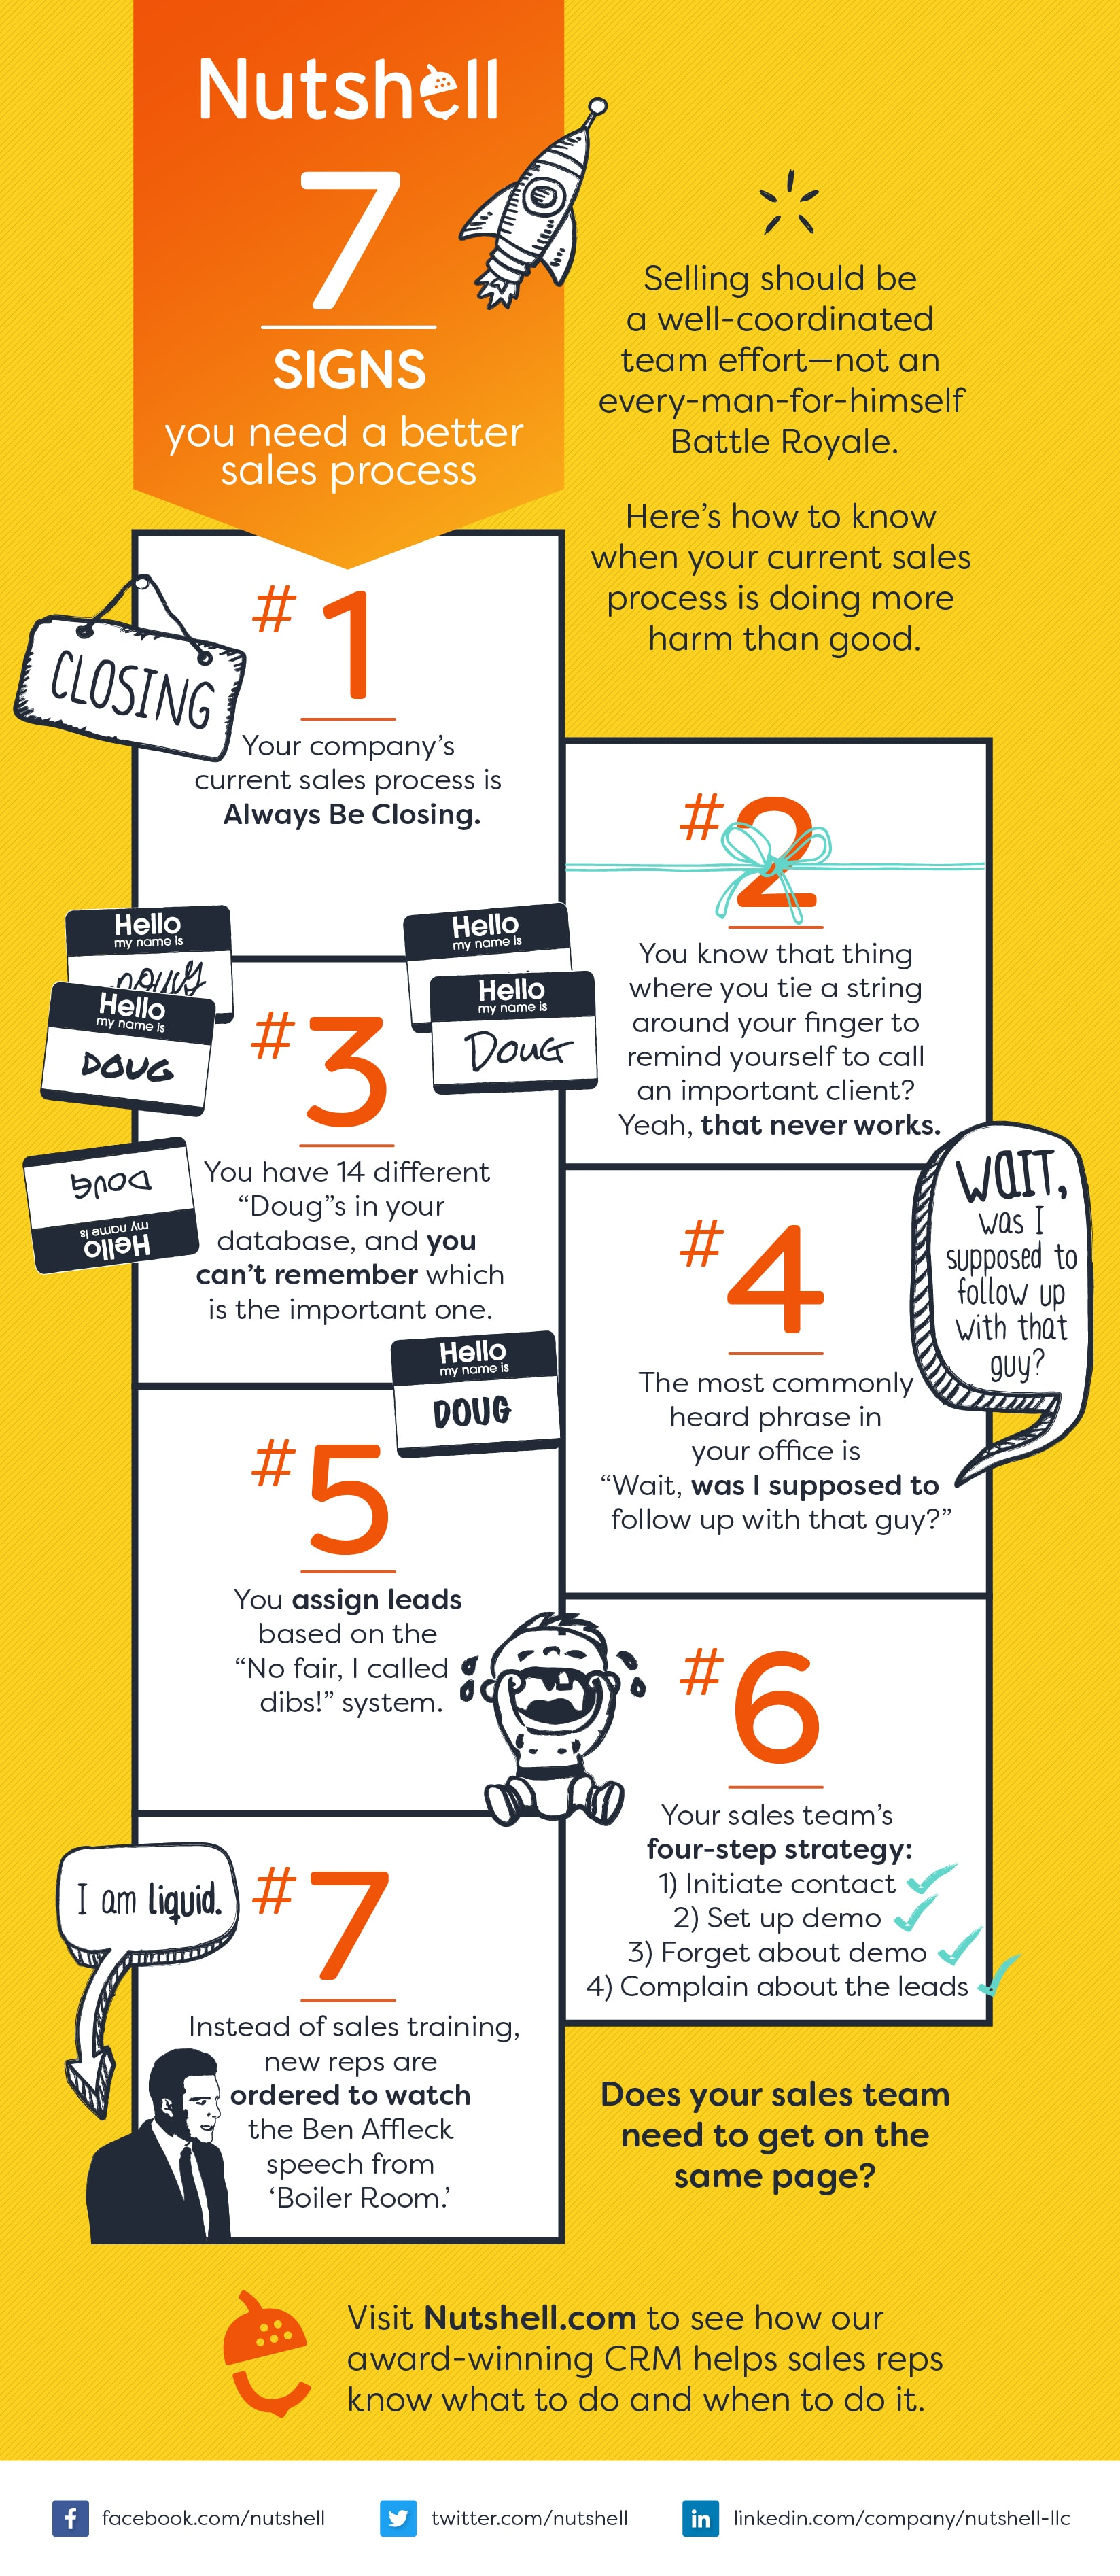 7 signs you need a better sales process infographic